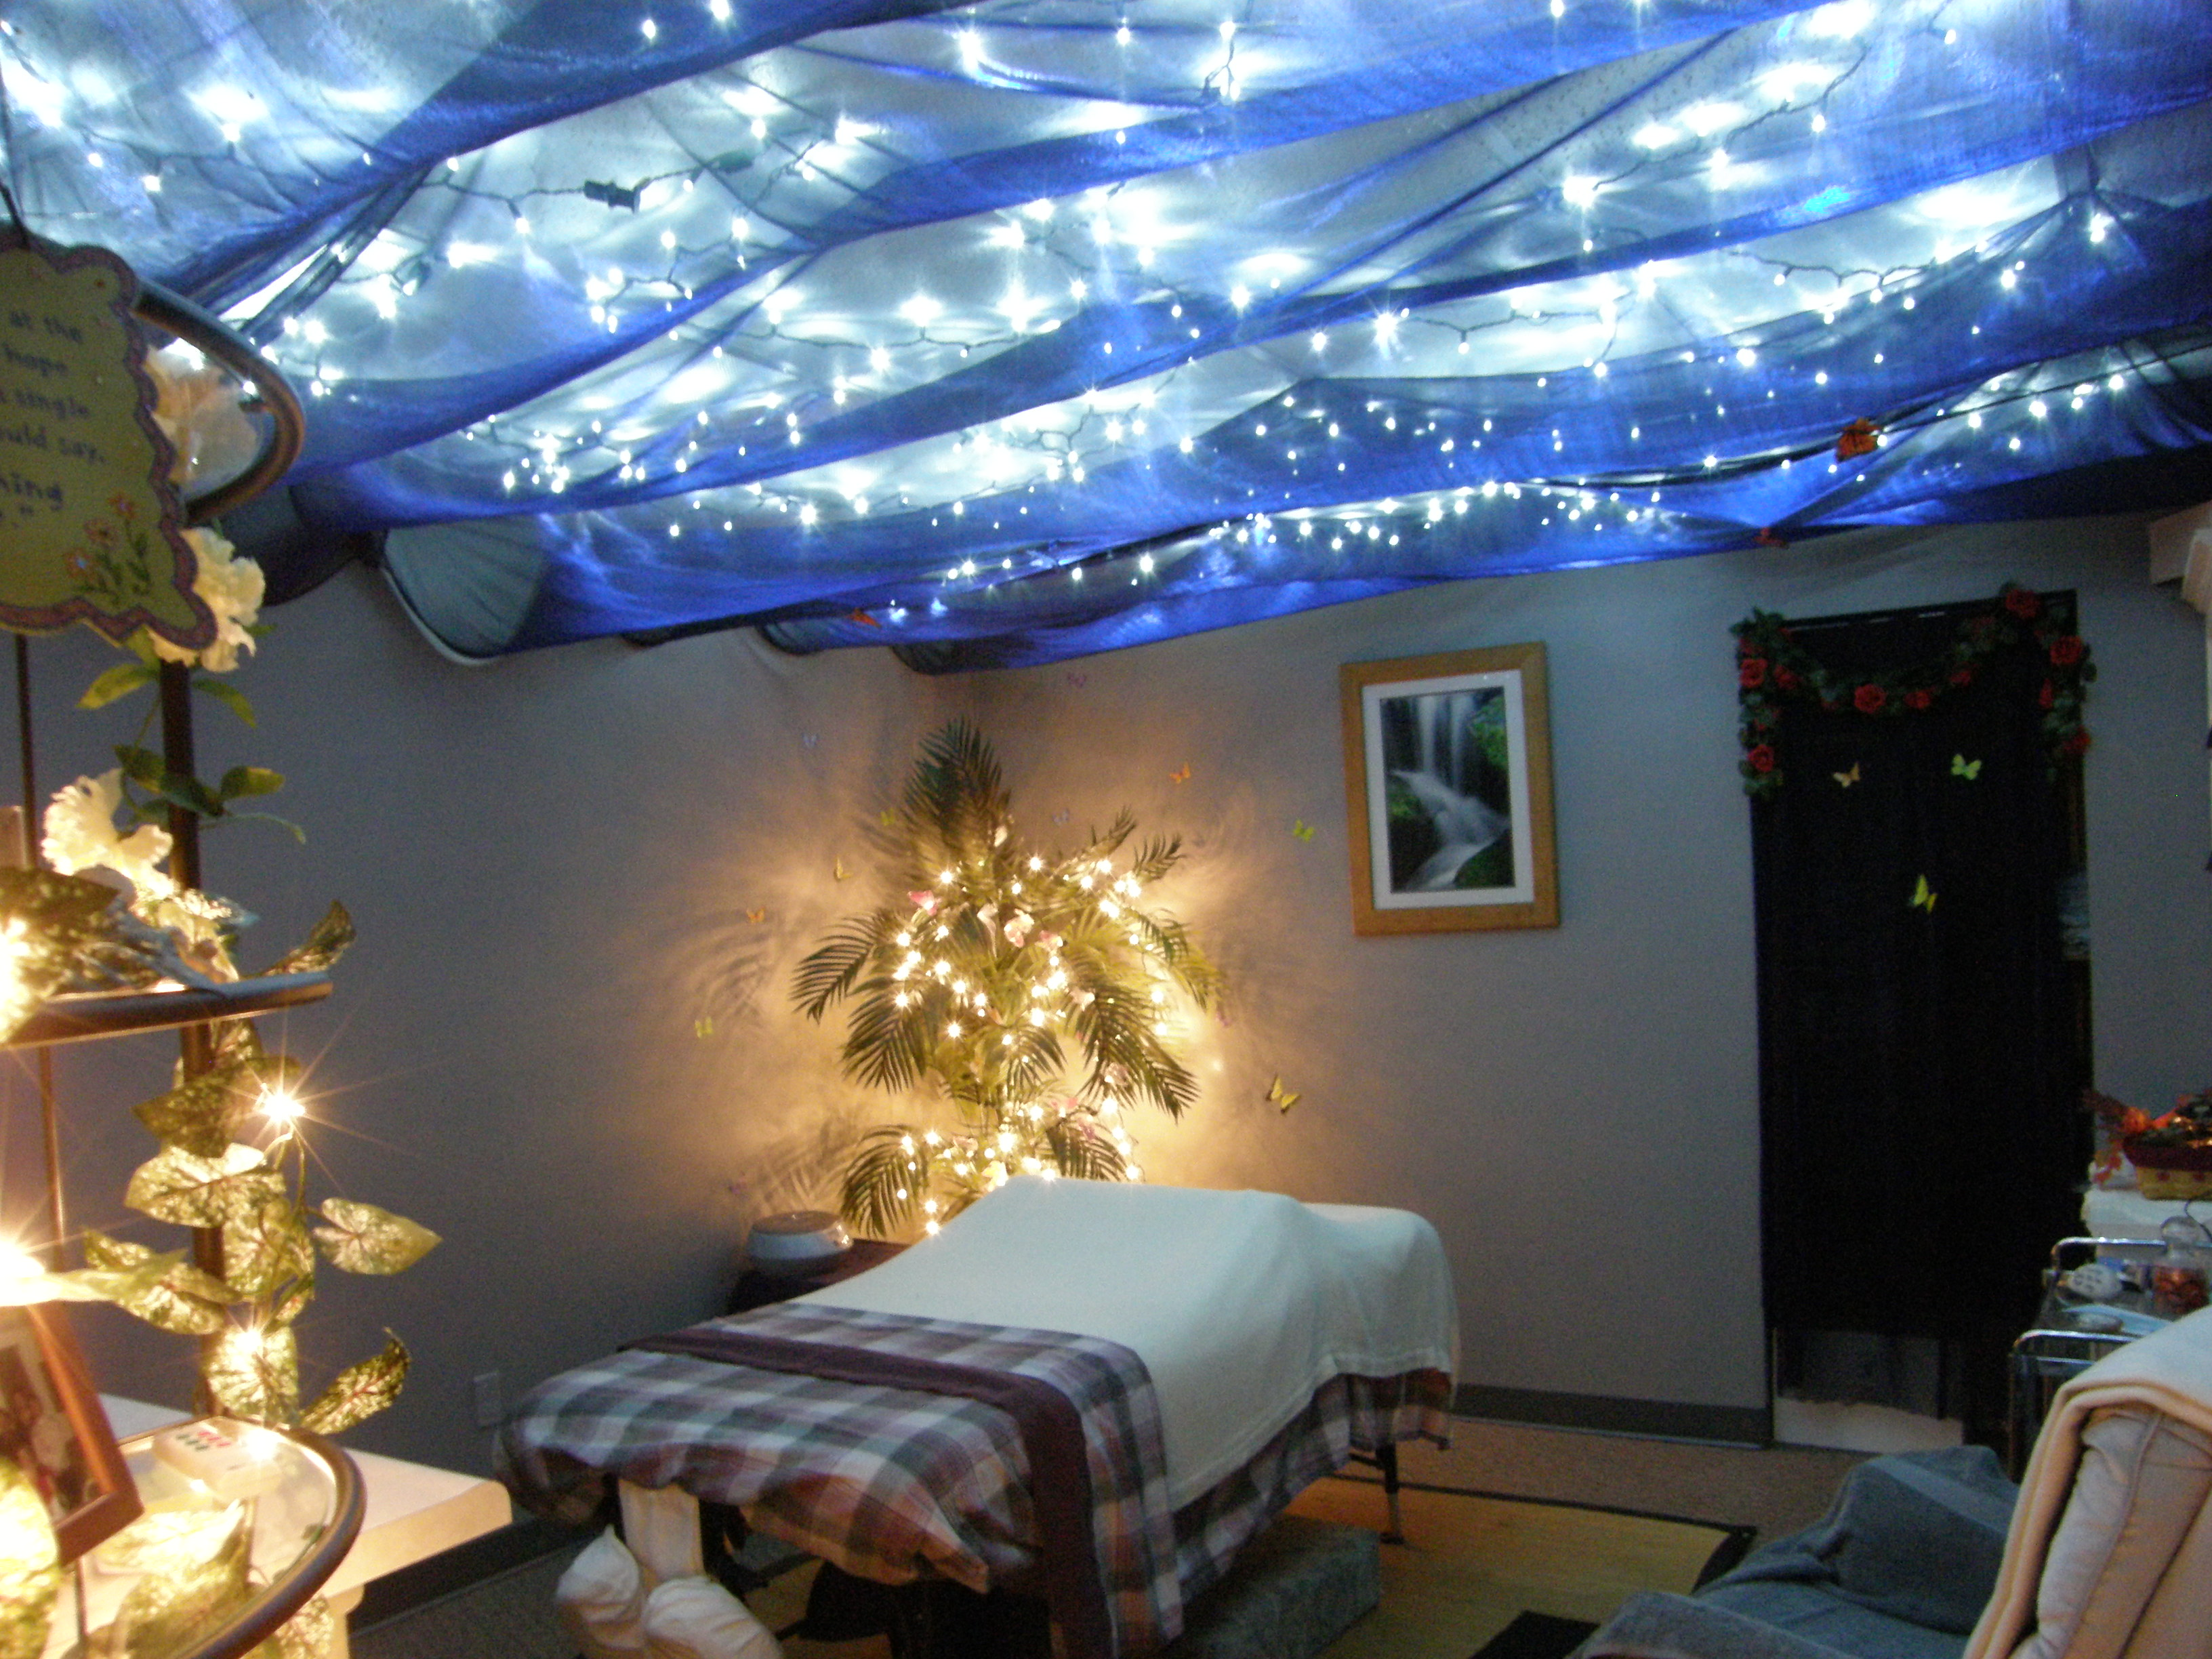 Massage Therapy Room Design Ideas Part - 46: Hd Wallpapers Spa Decor Ideas For Home Hfn